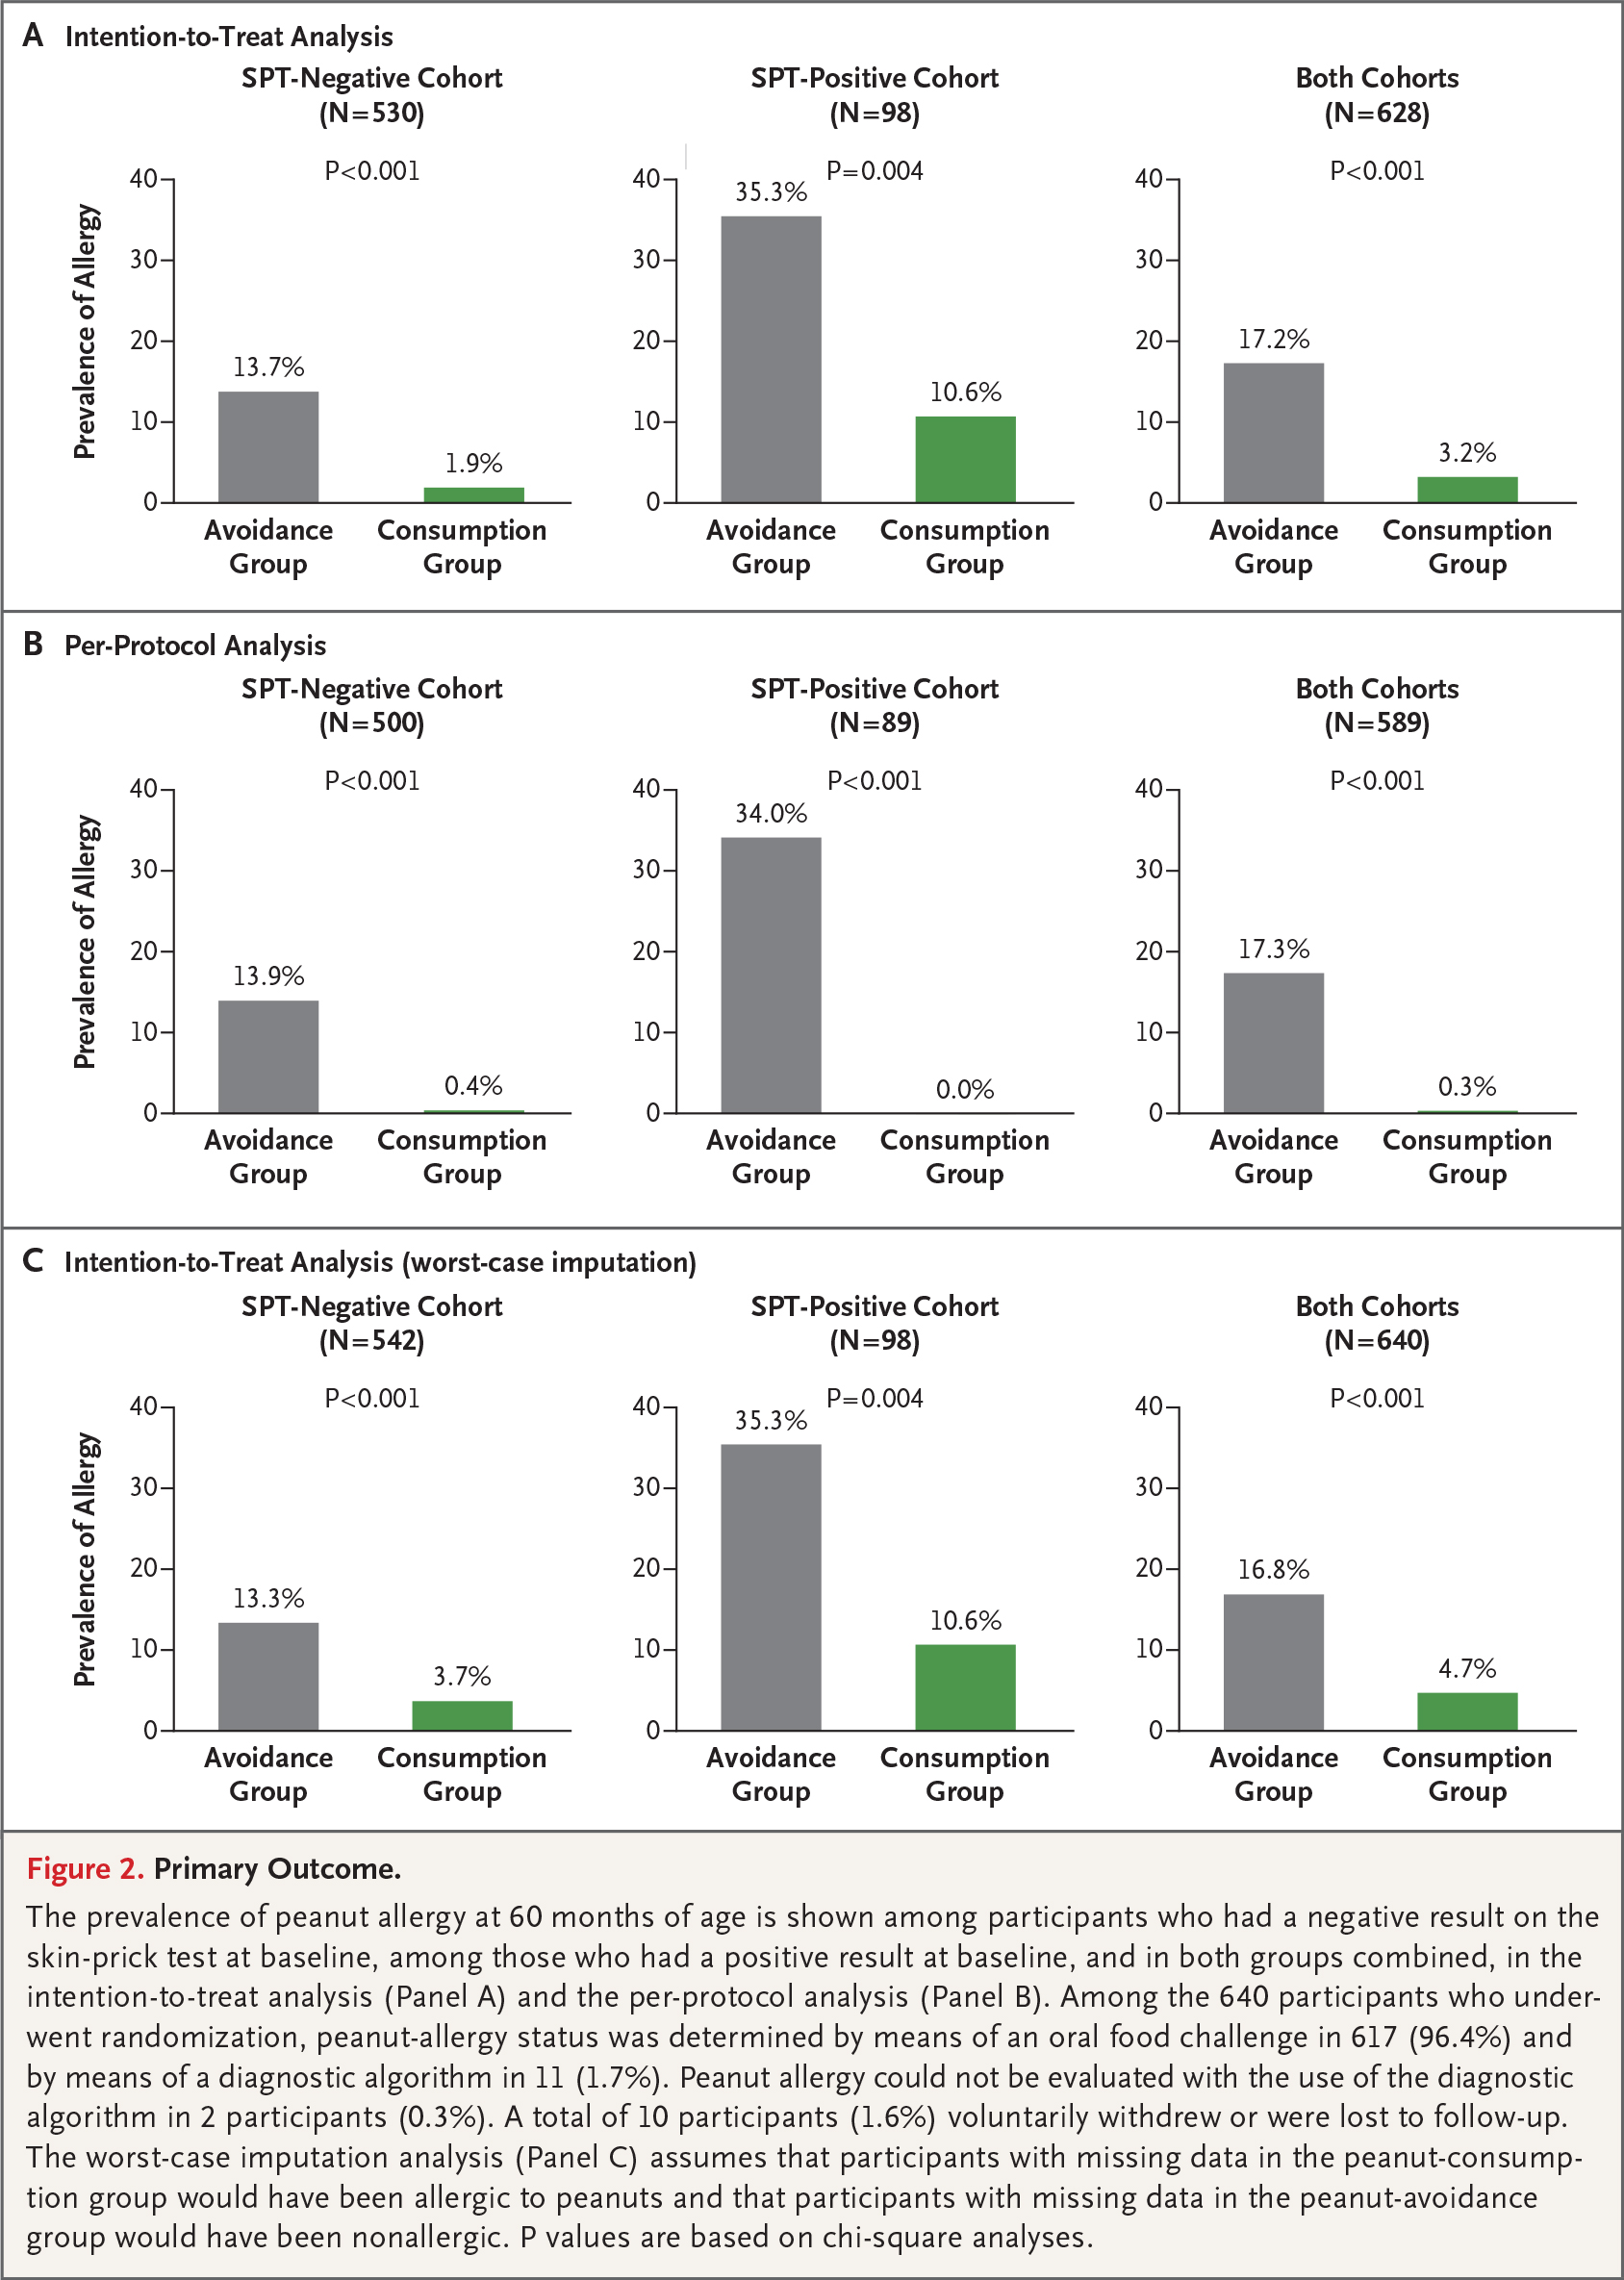 New Oral Immunotherapy for Peanut Allergy | NEJM Resident